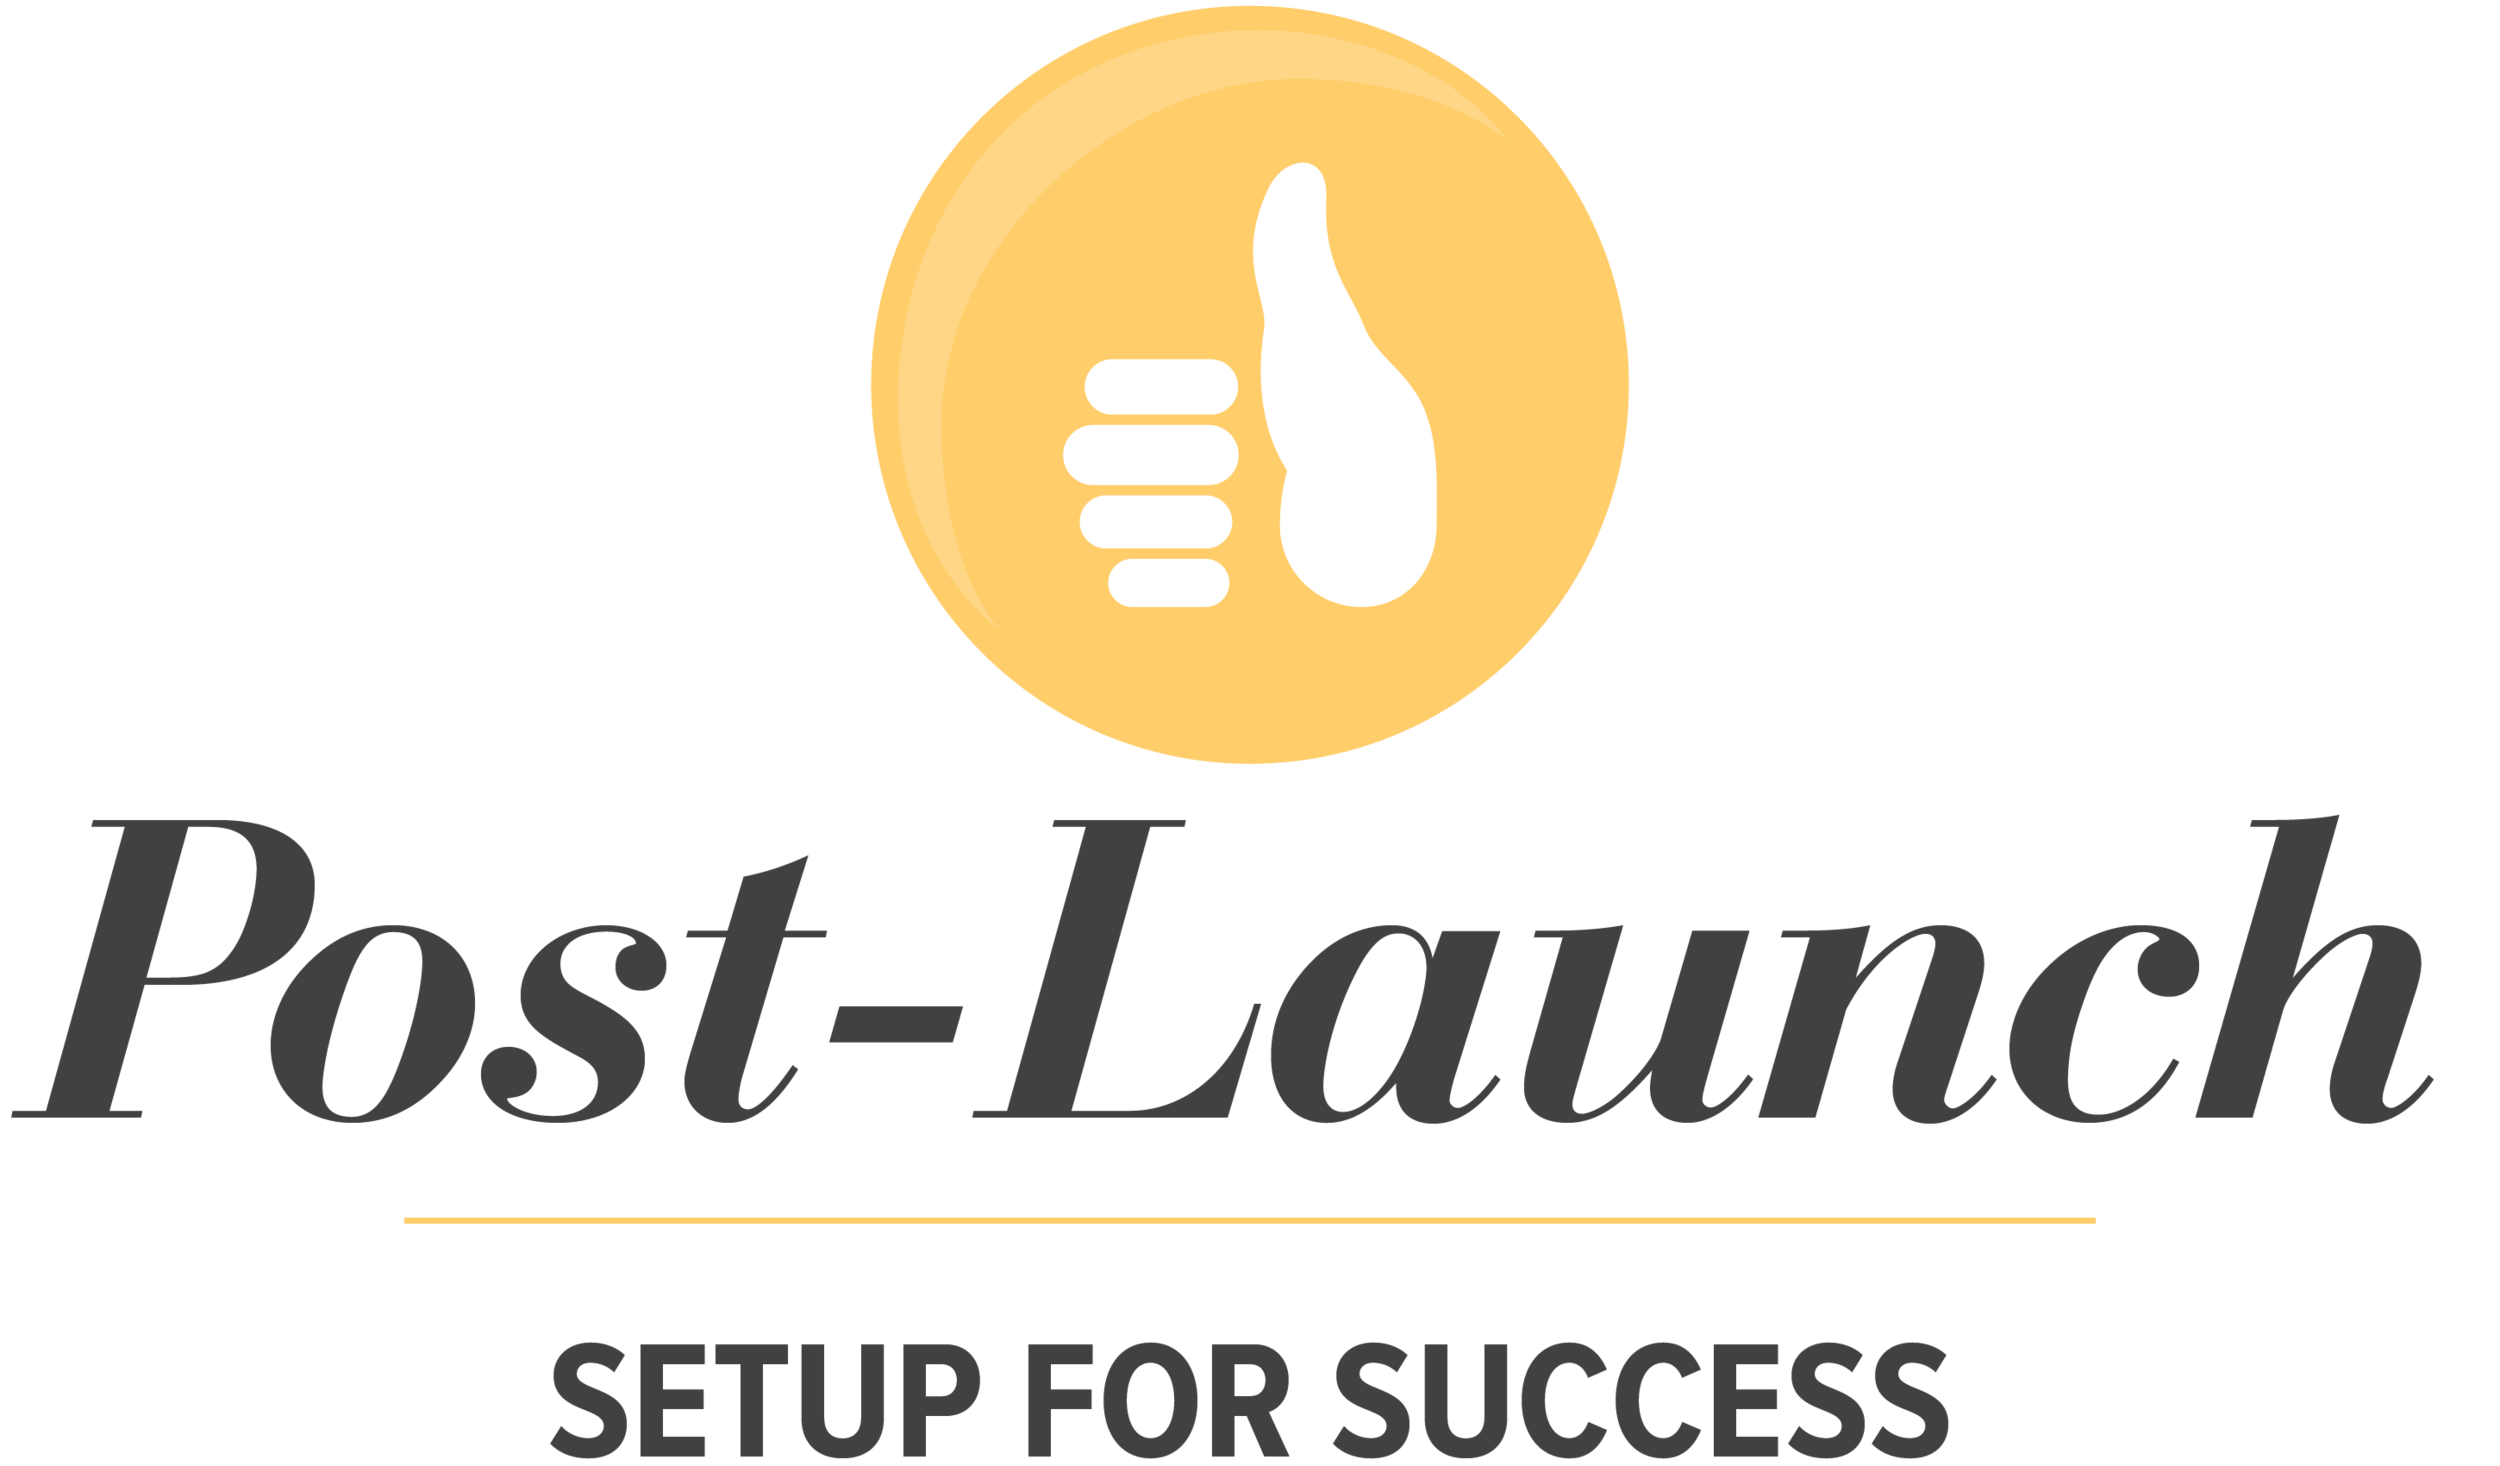 Post Launch of Pursuit with Passion Program for Entrepreneurs needing branding tips and a website.